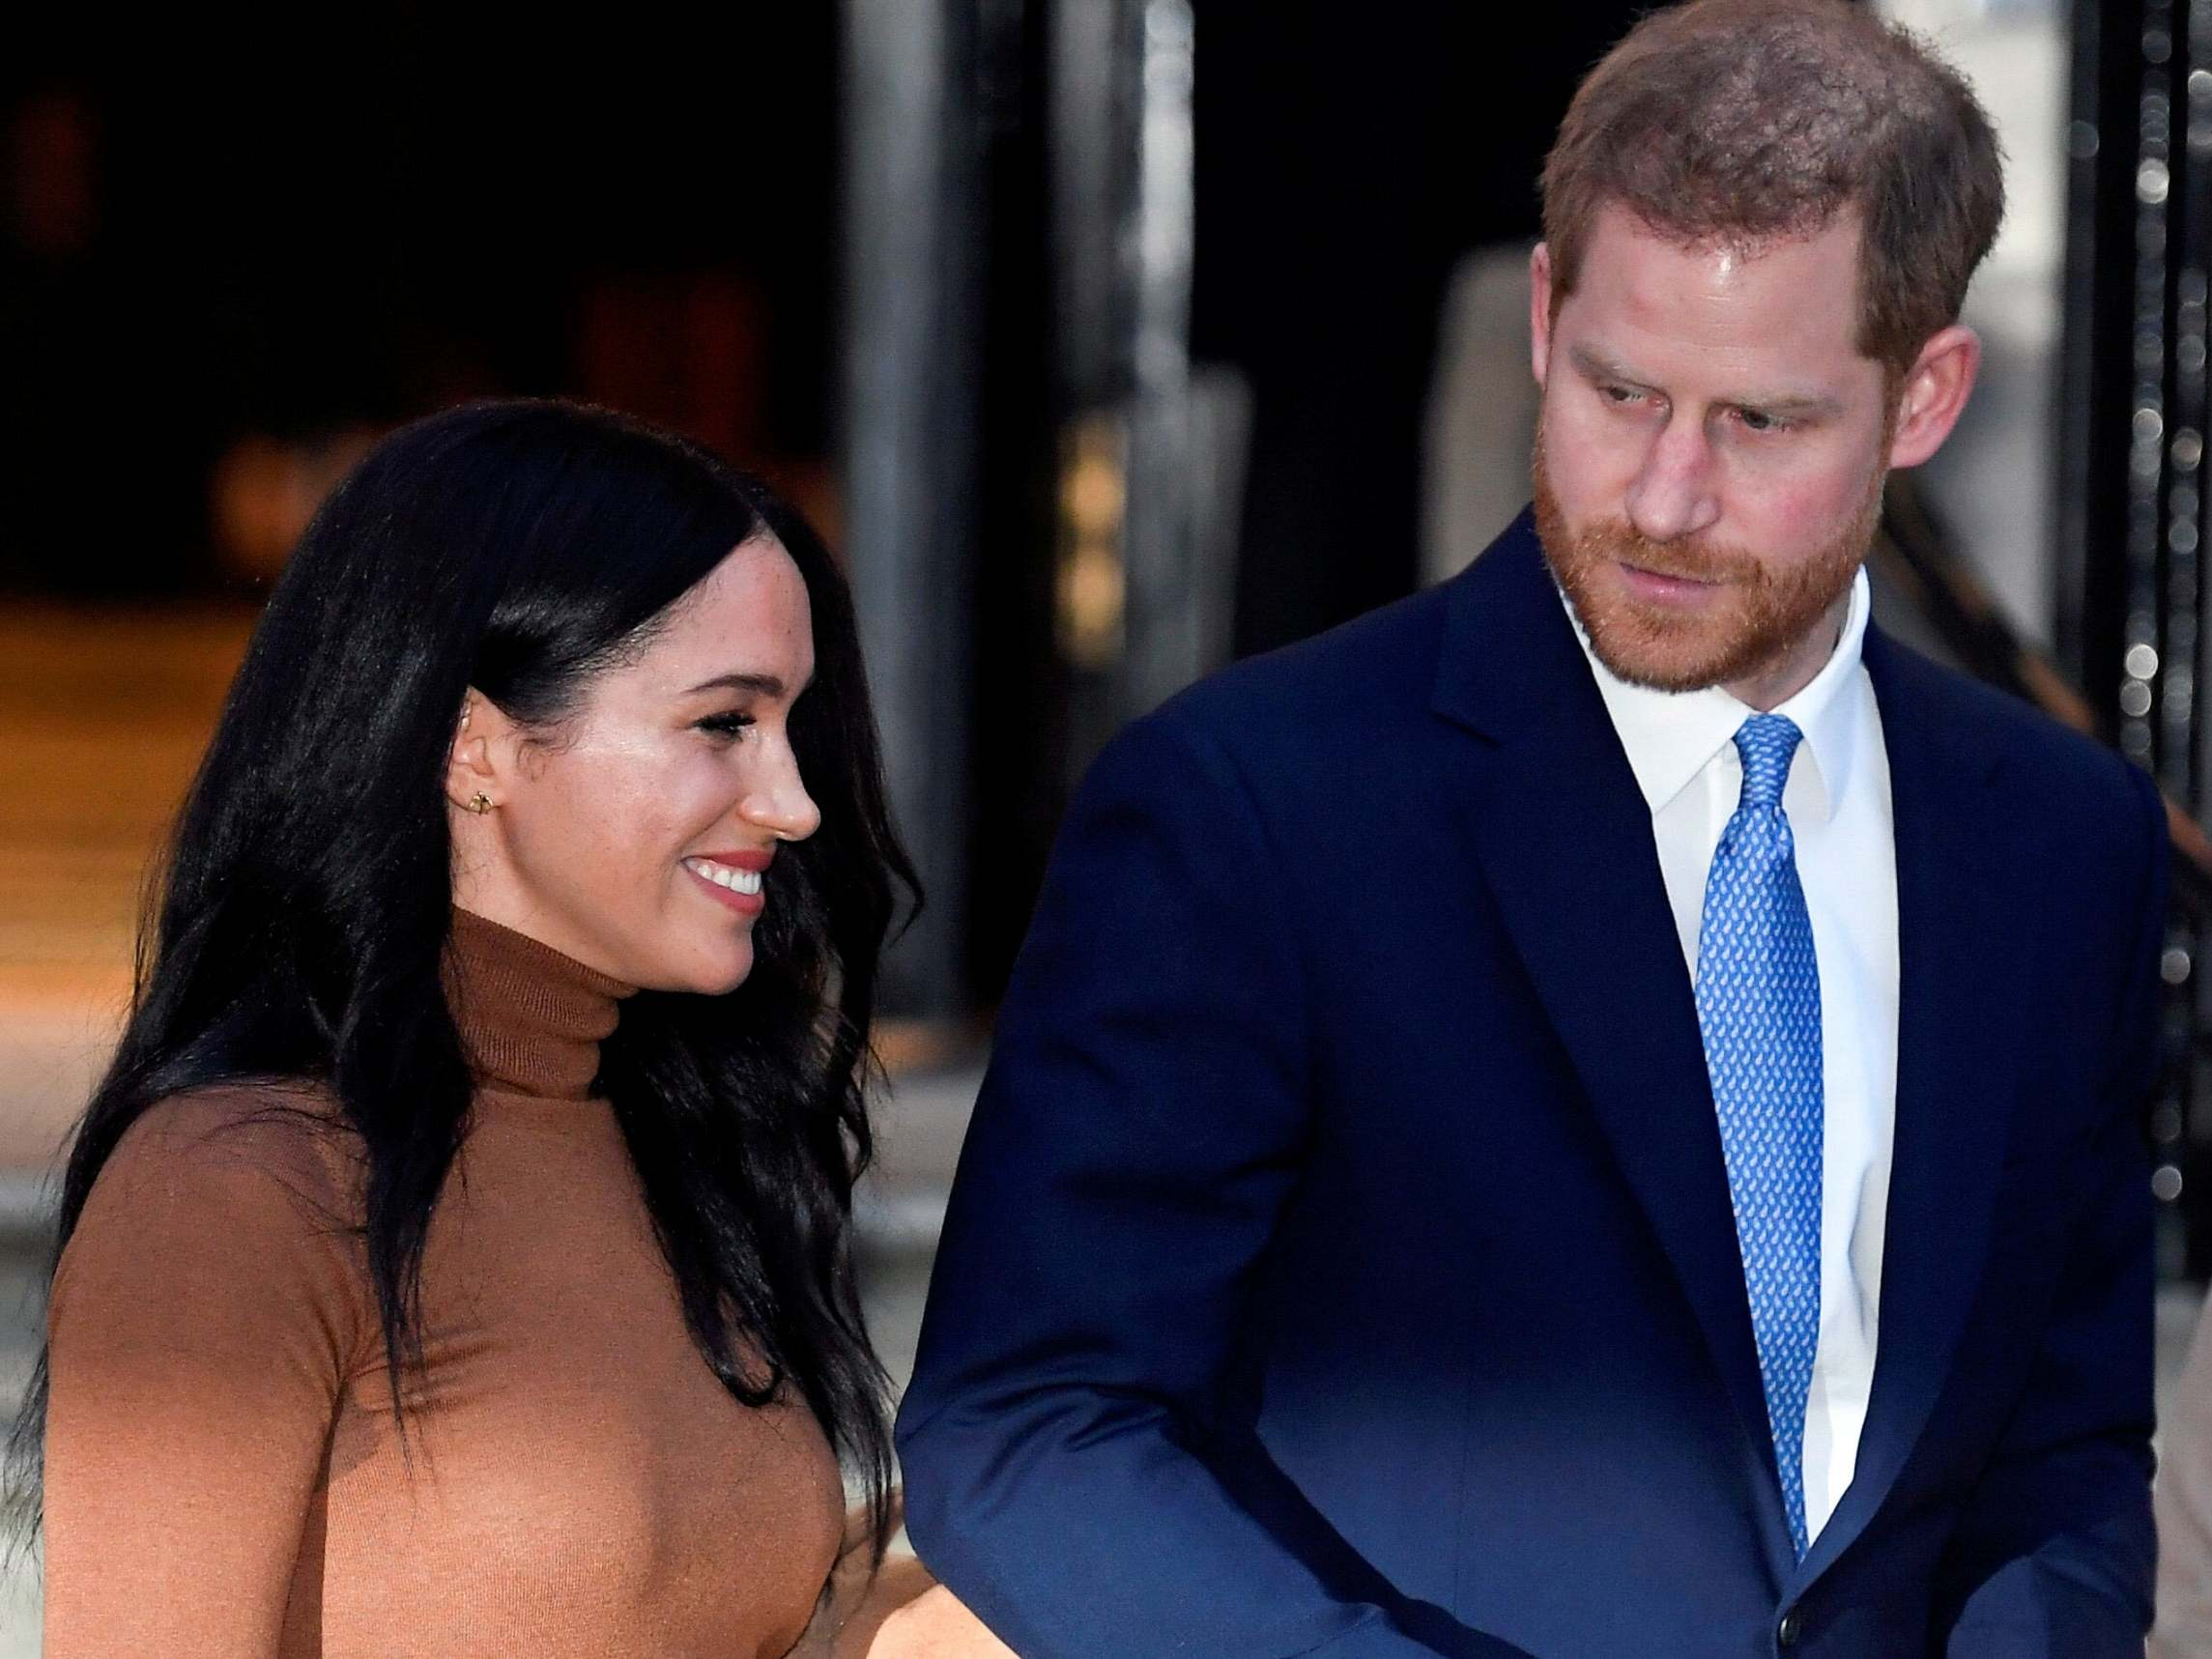 Prince Harry and Meghan Markle to drop 'royal' from their branding